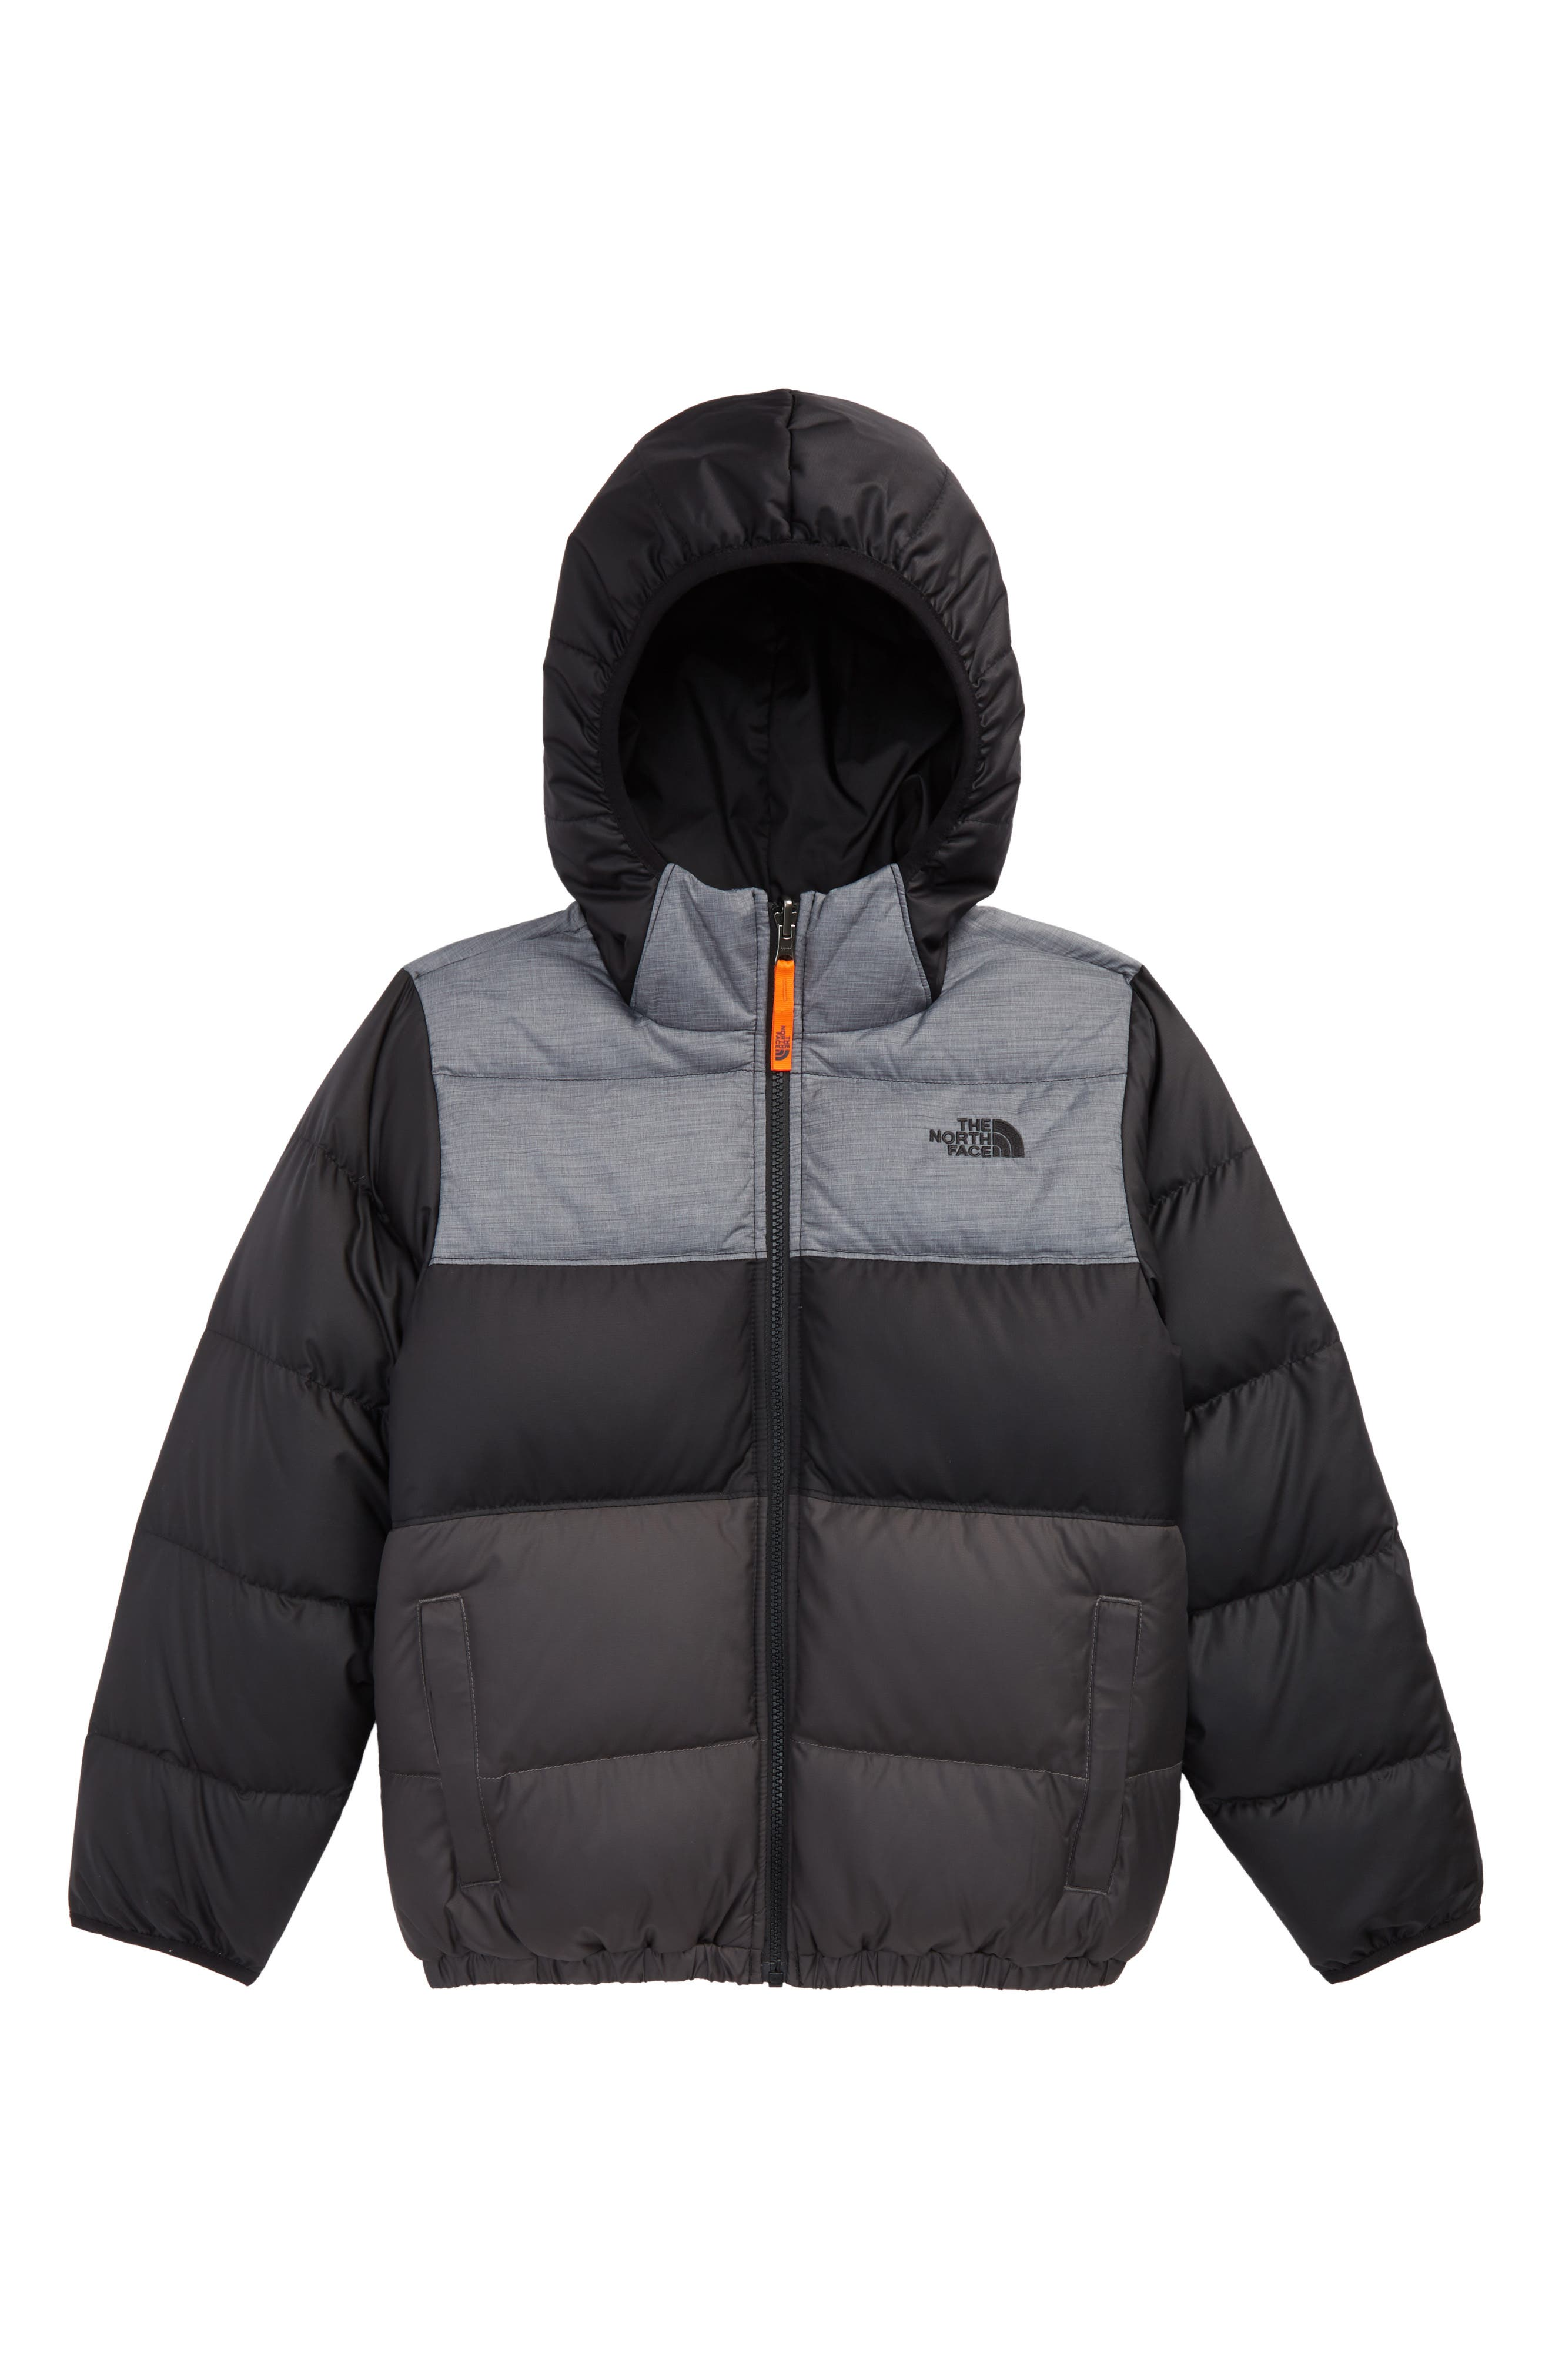 THE NORTH FACE 'Moondoggy' Water Repellent Reversible Down Jacket, Main, color, BLACK/ GRAPHITE GREY